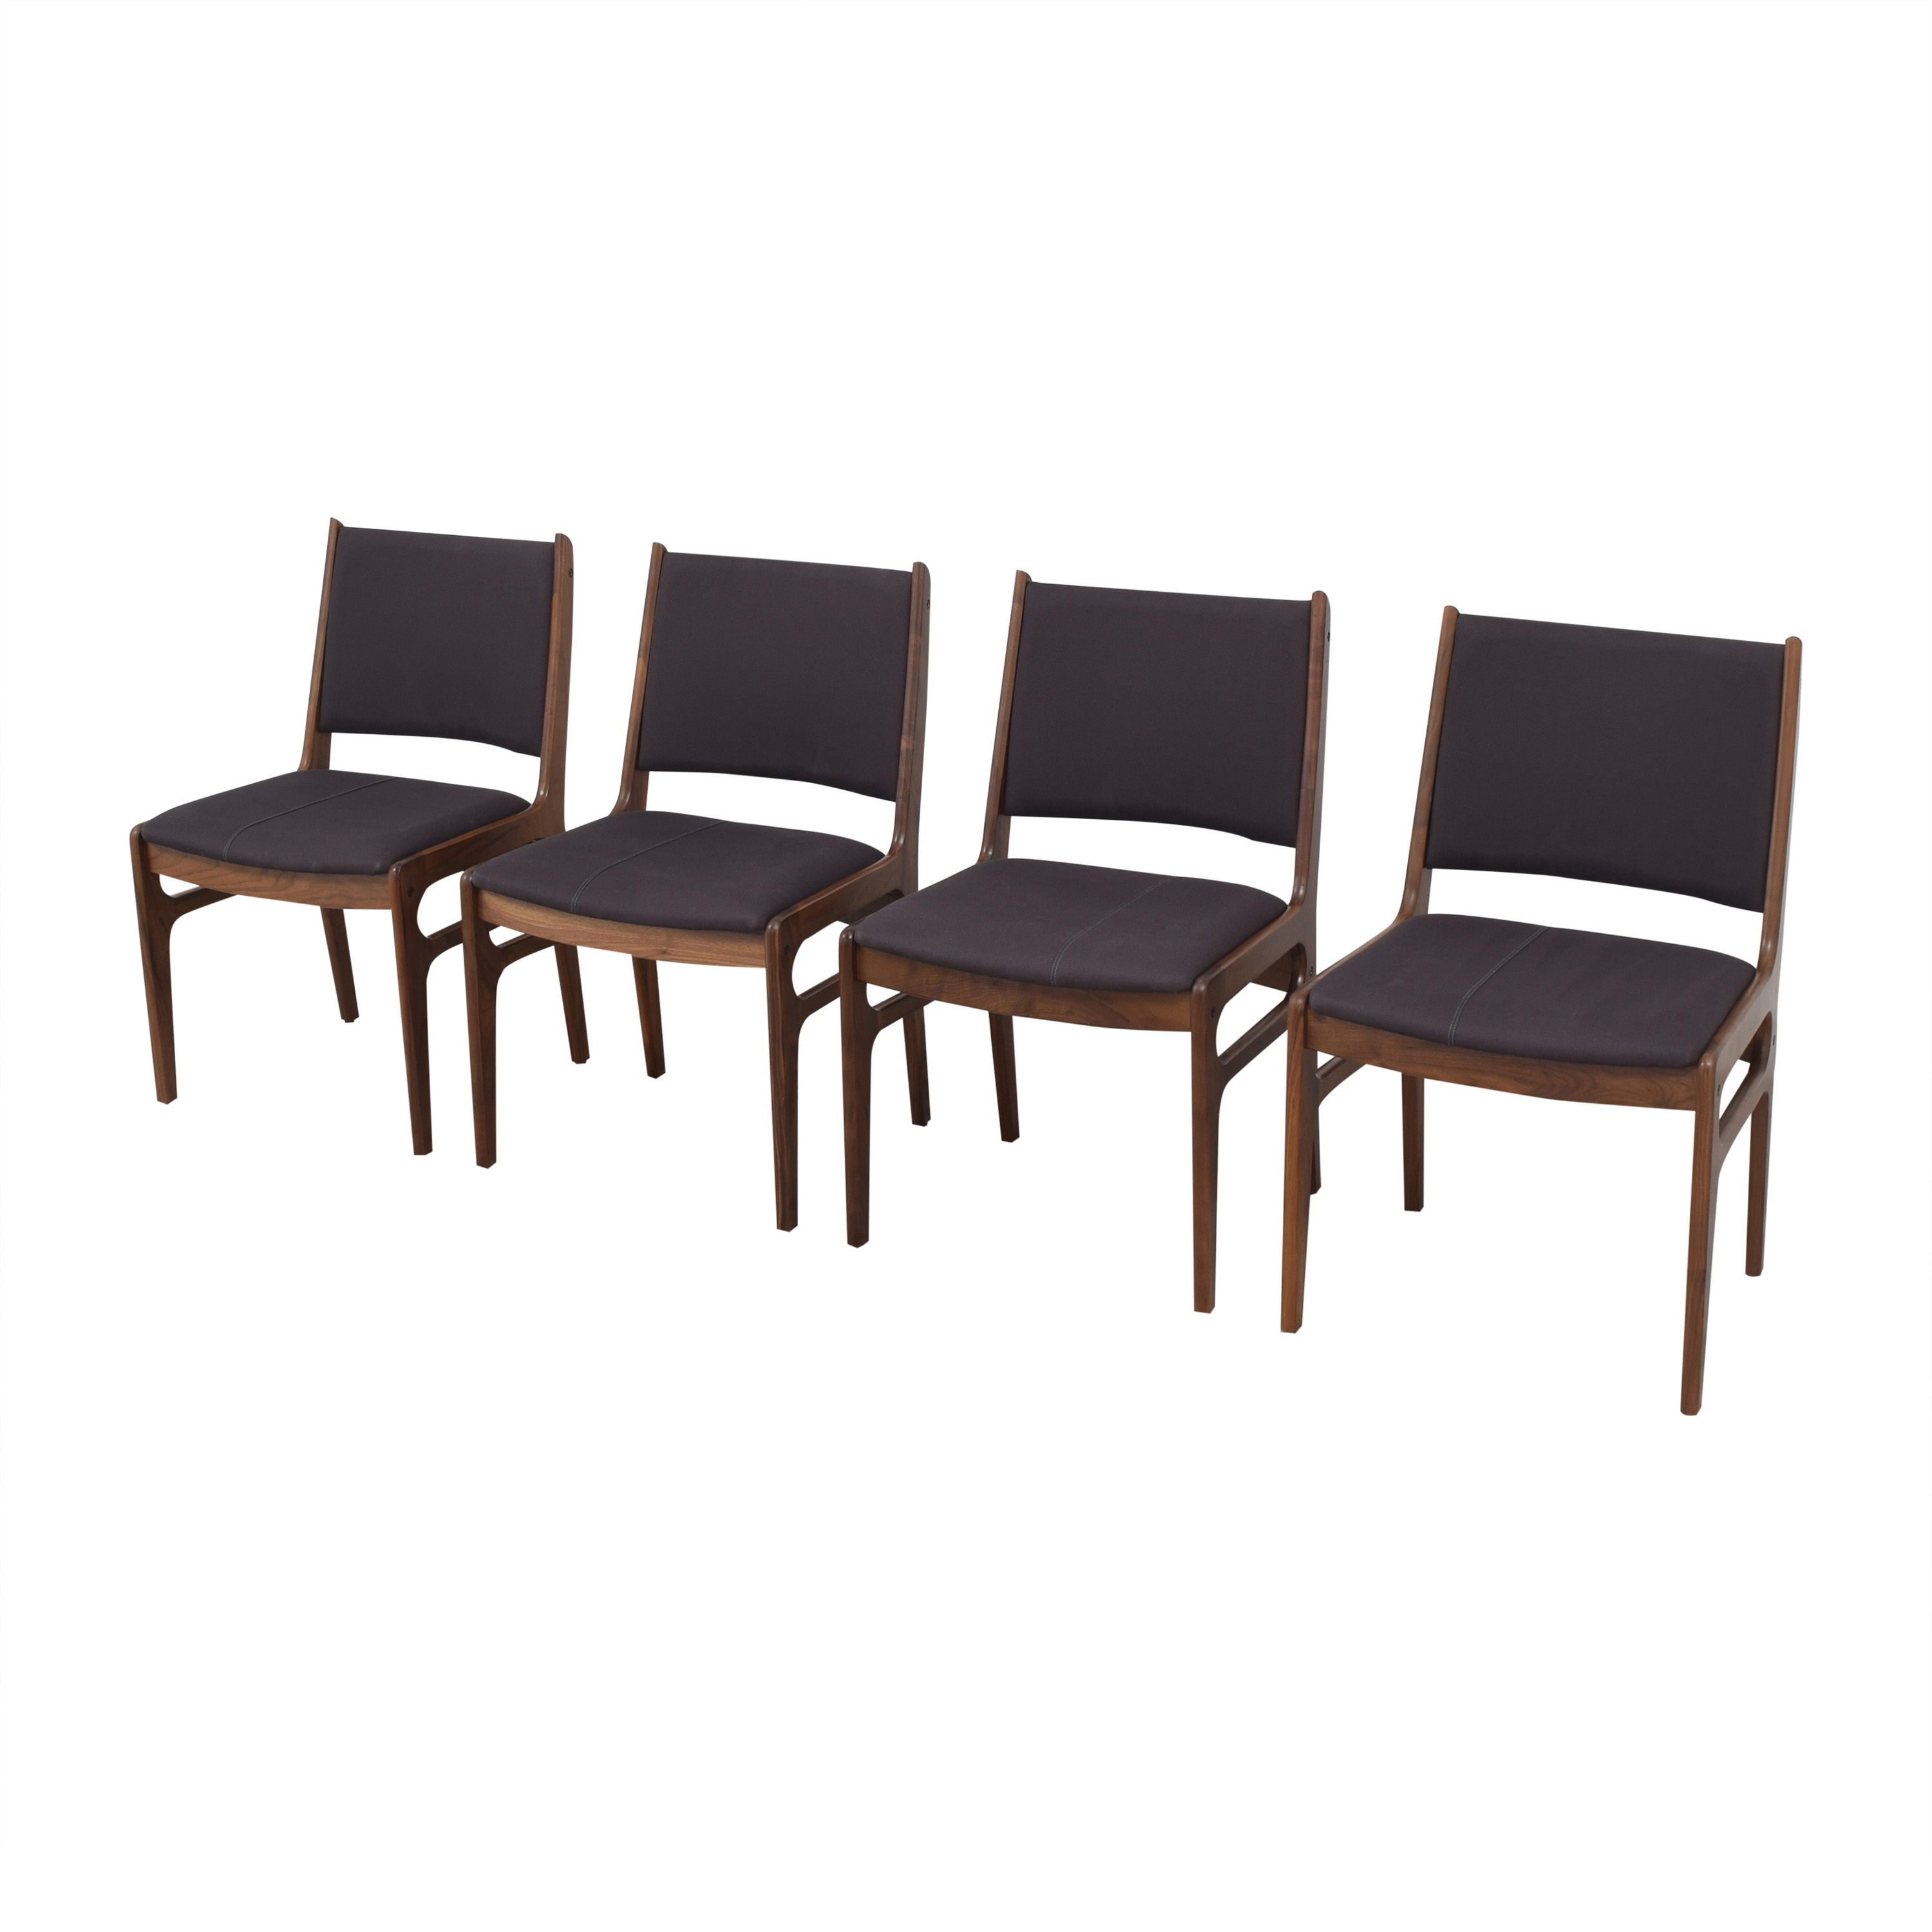 Four Hands Four Hands Bina Side Dining Chairs used